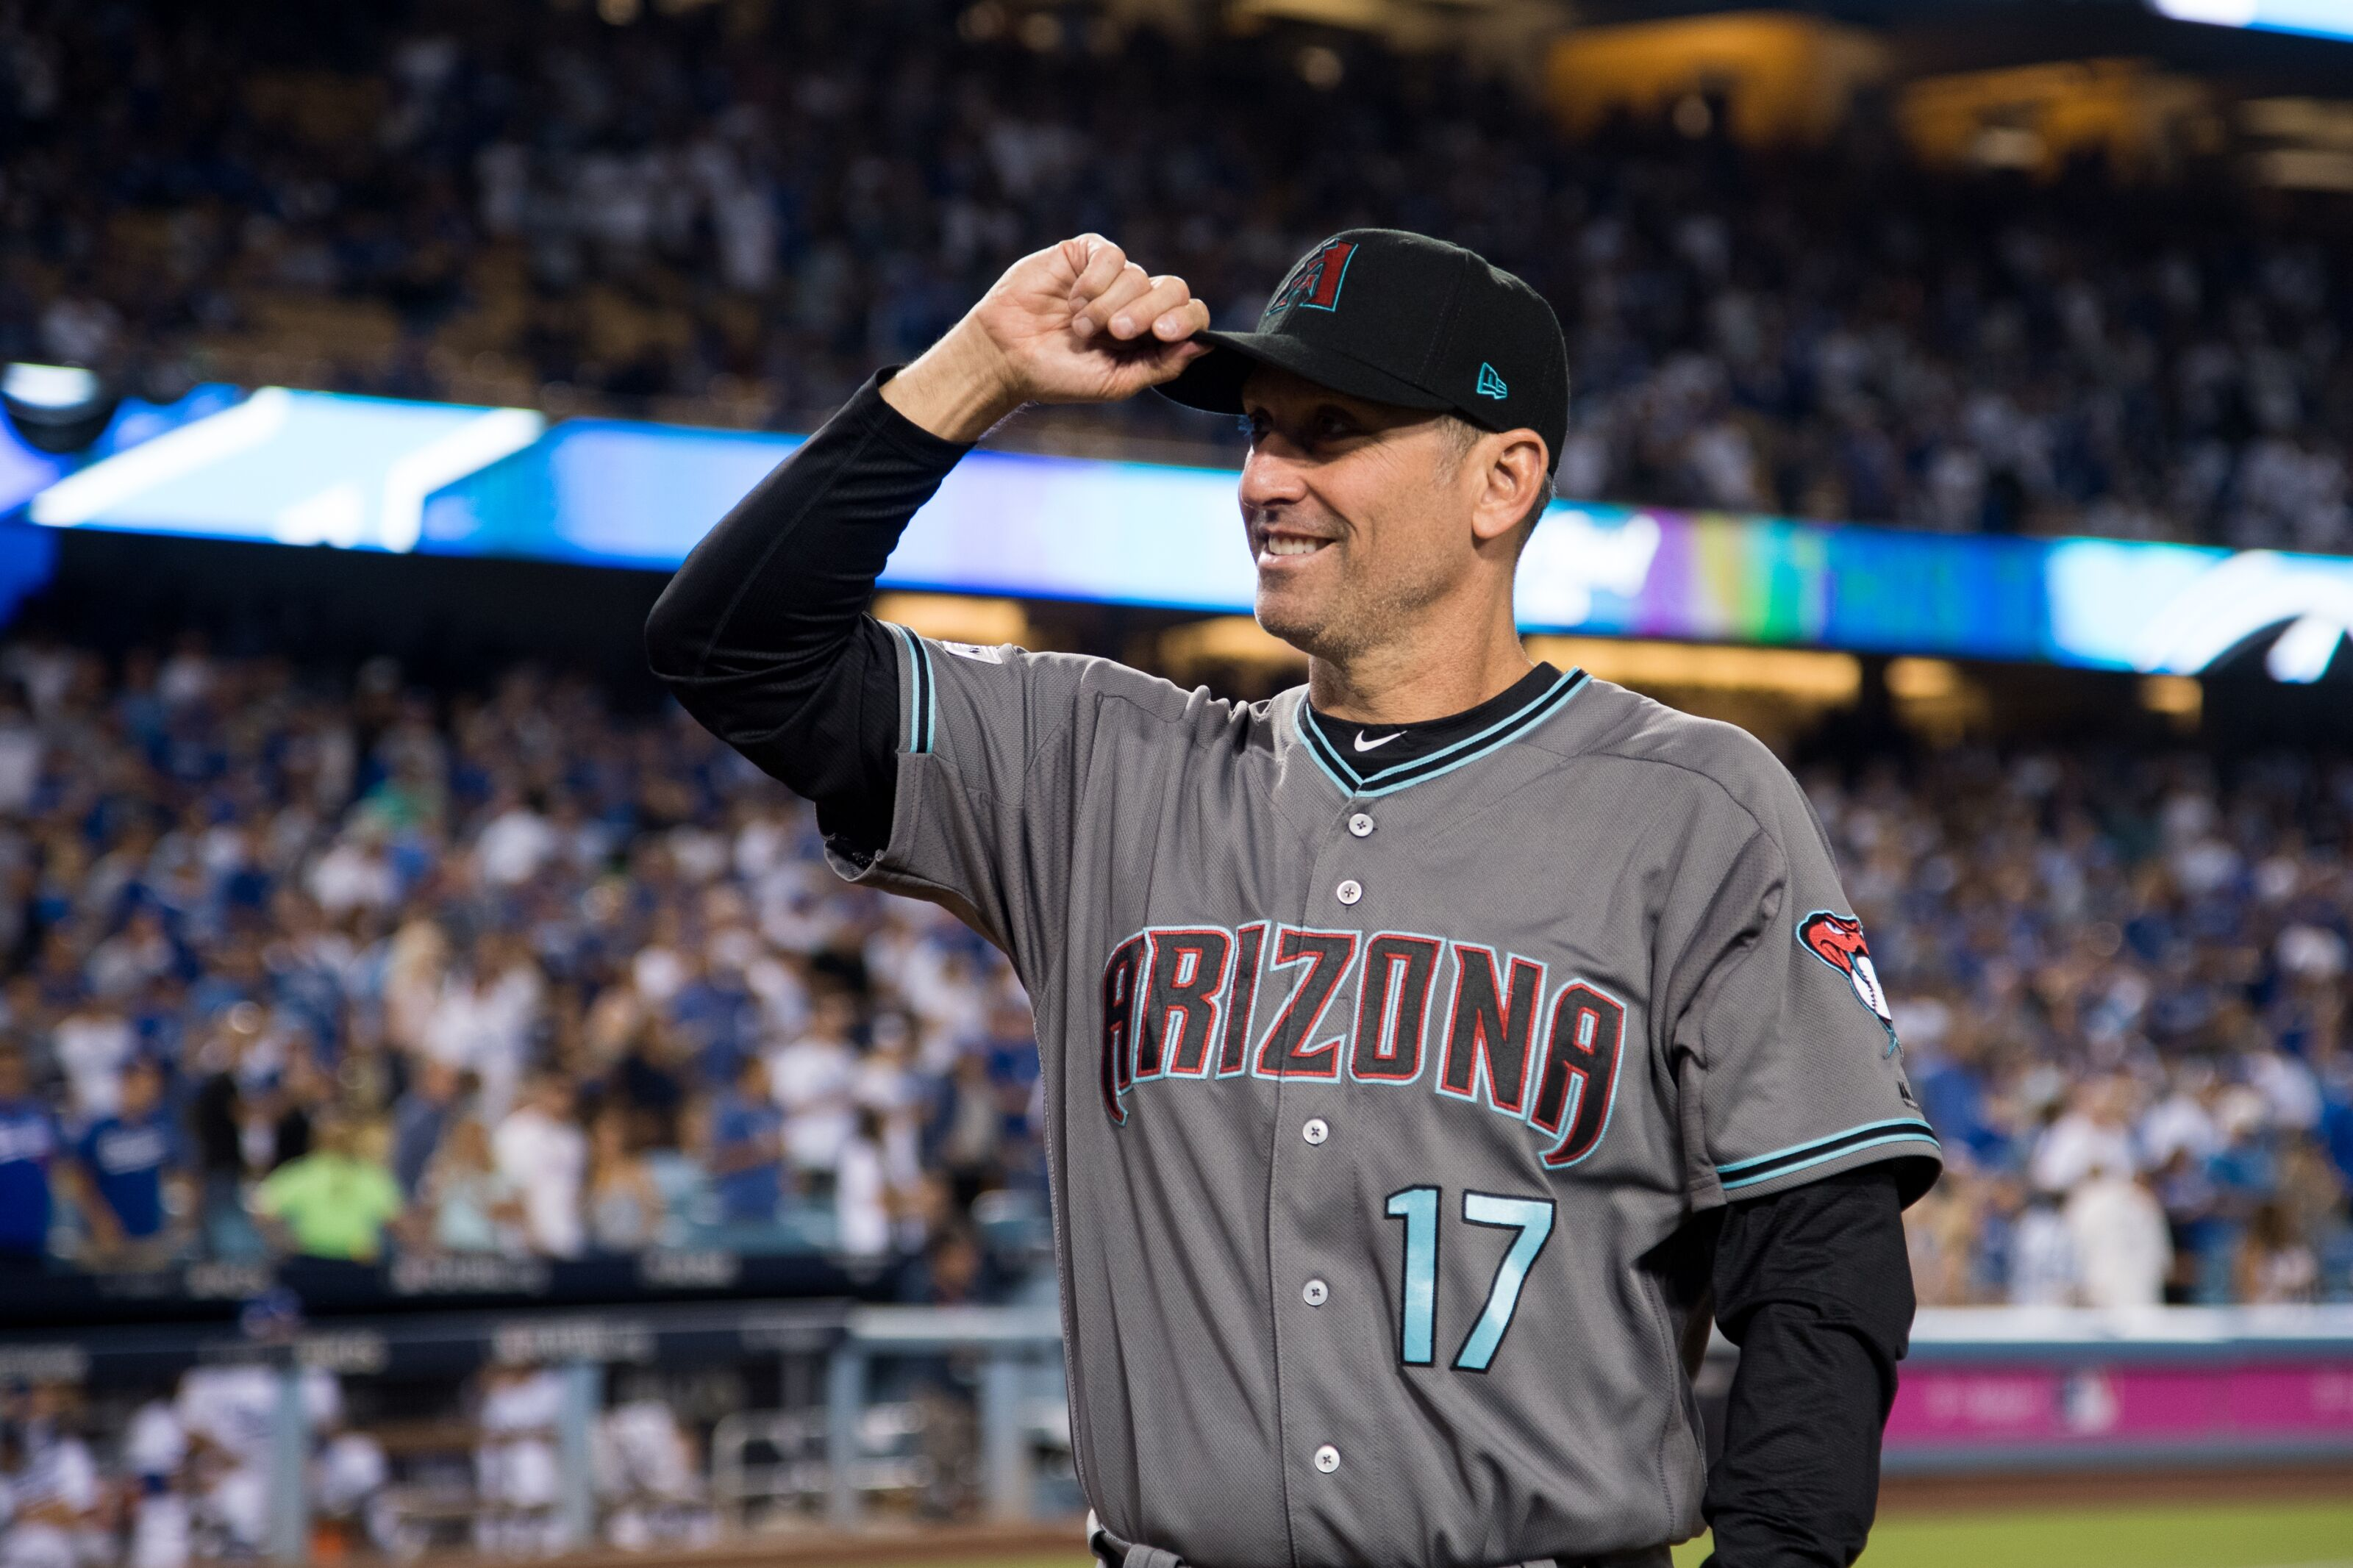 860599096-arizona-diamondbacks-vs-los-angeles-dodgers-nlds-game-one.jpg